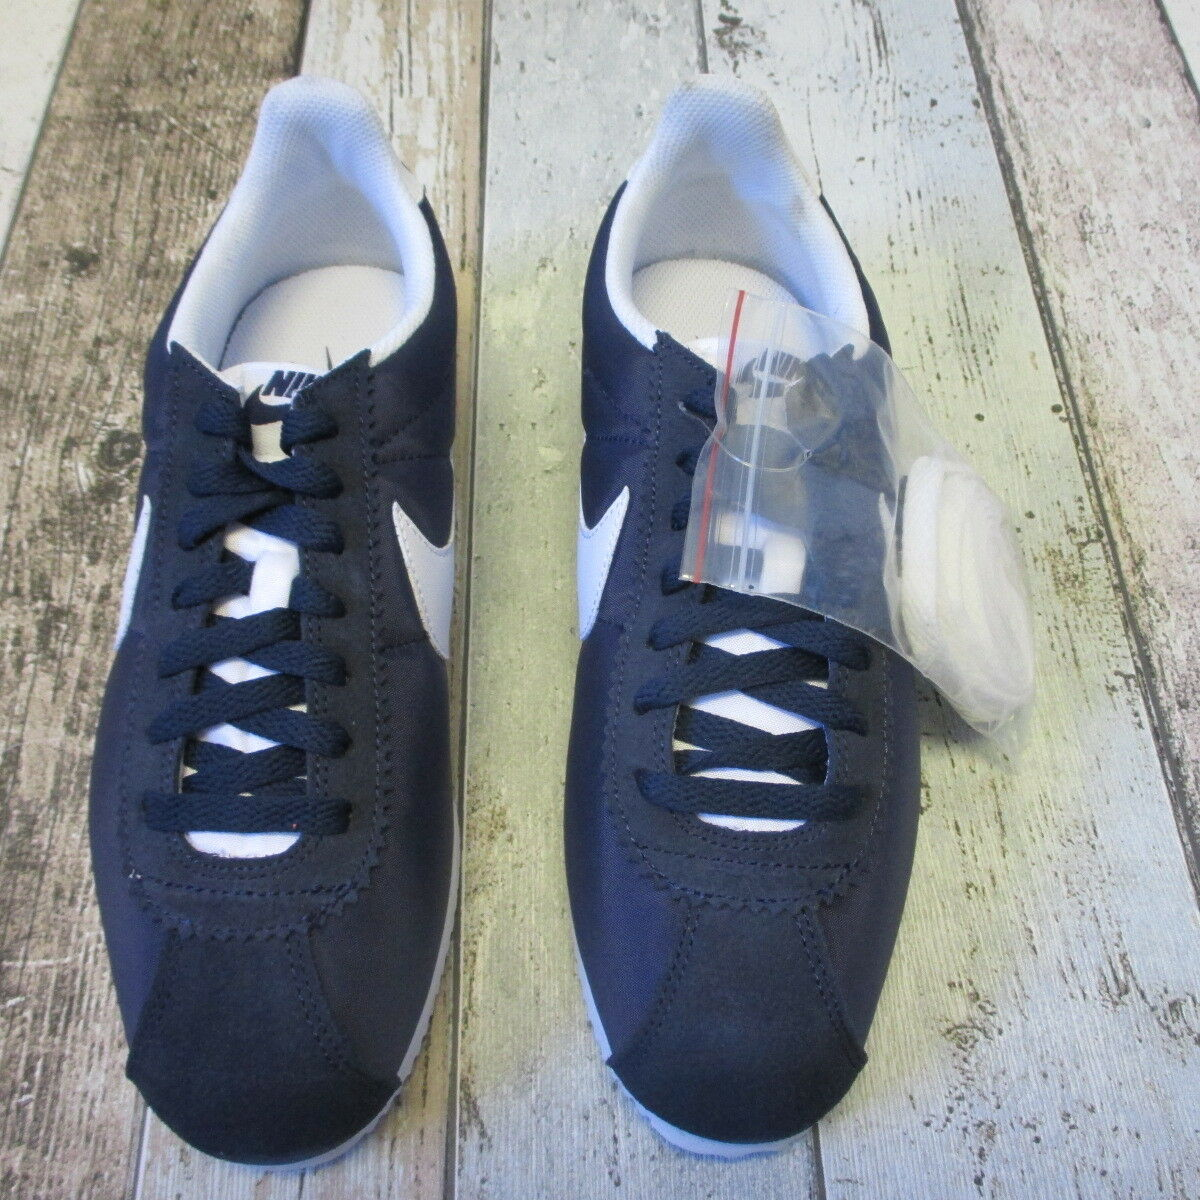 Nike Cortez Trainers Navy/ (4113756 Blanc  Taille 6 (4113756 Navy/ loc s16)c 8422fc